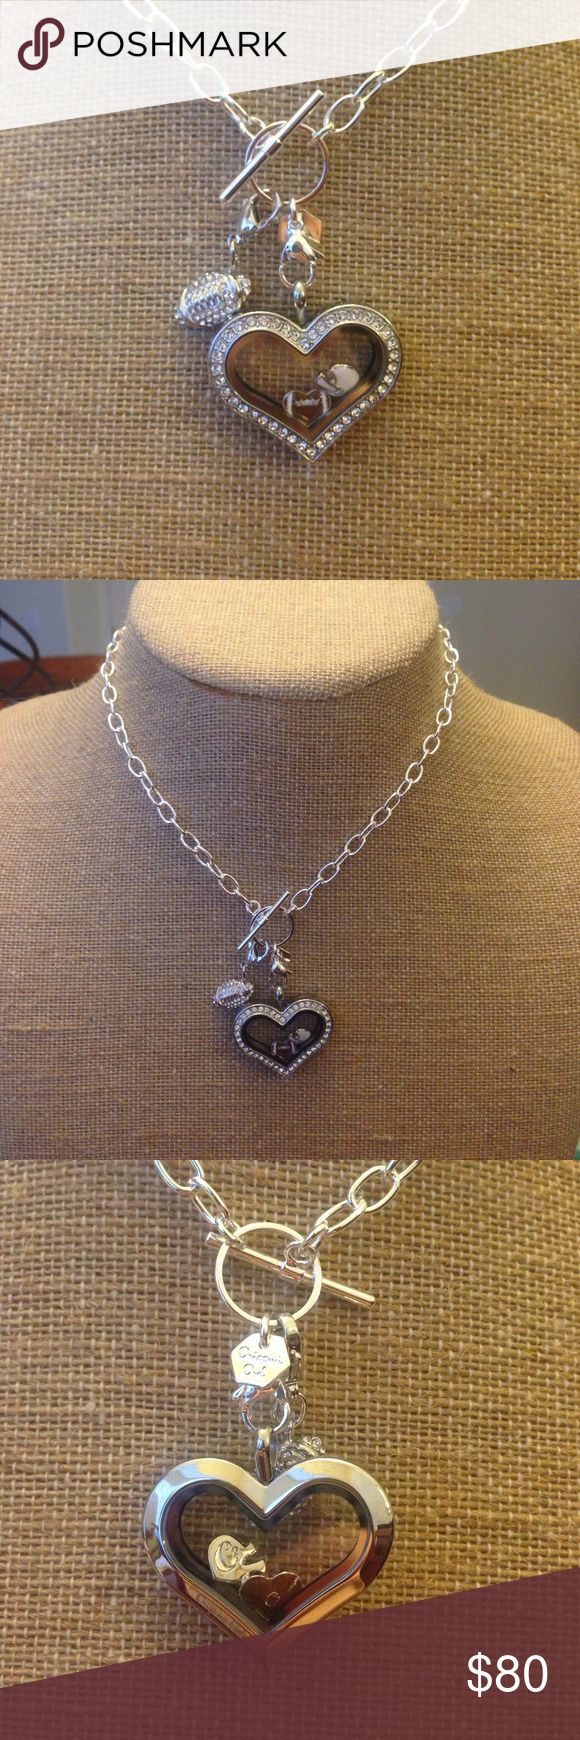 "Origami Owl Football Heart Locket NWT. 100% authentic. Includes crystal heart locket, 16"" toggle chain, 2 charms (football heart, football helmet), and a crystal football dangle. I have 2 of these for sale!! Each one retails for $100 Origami Owl Jewelry Necklaces"